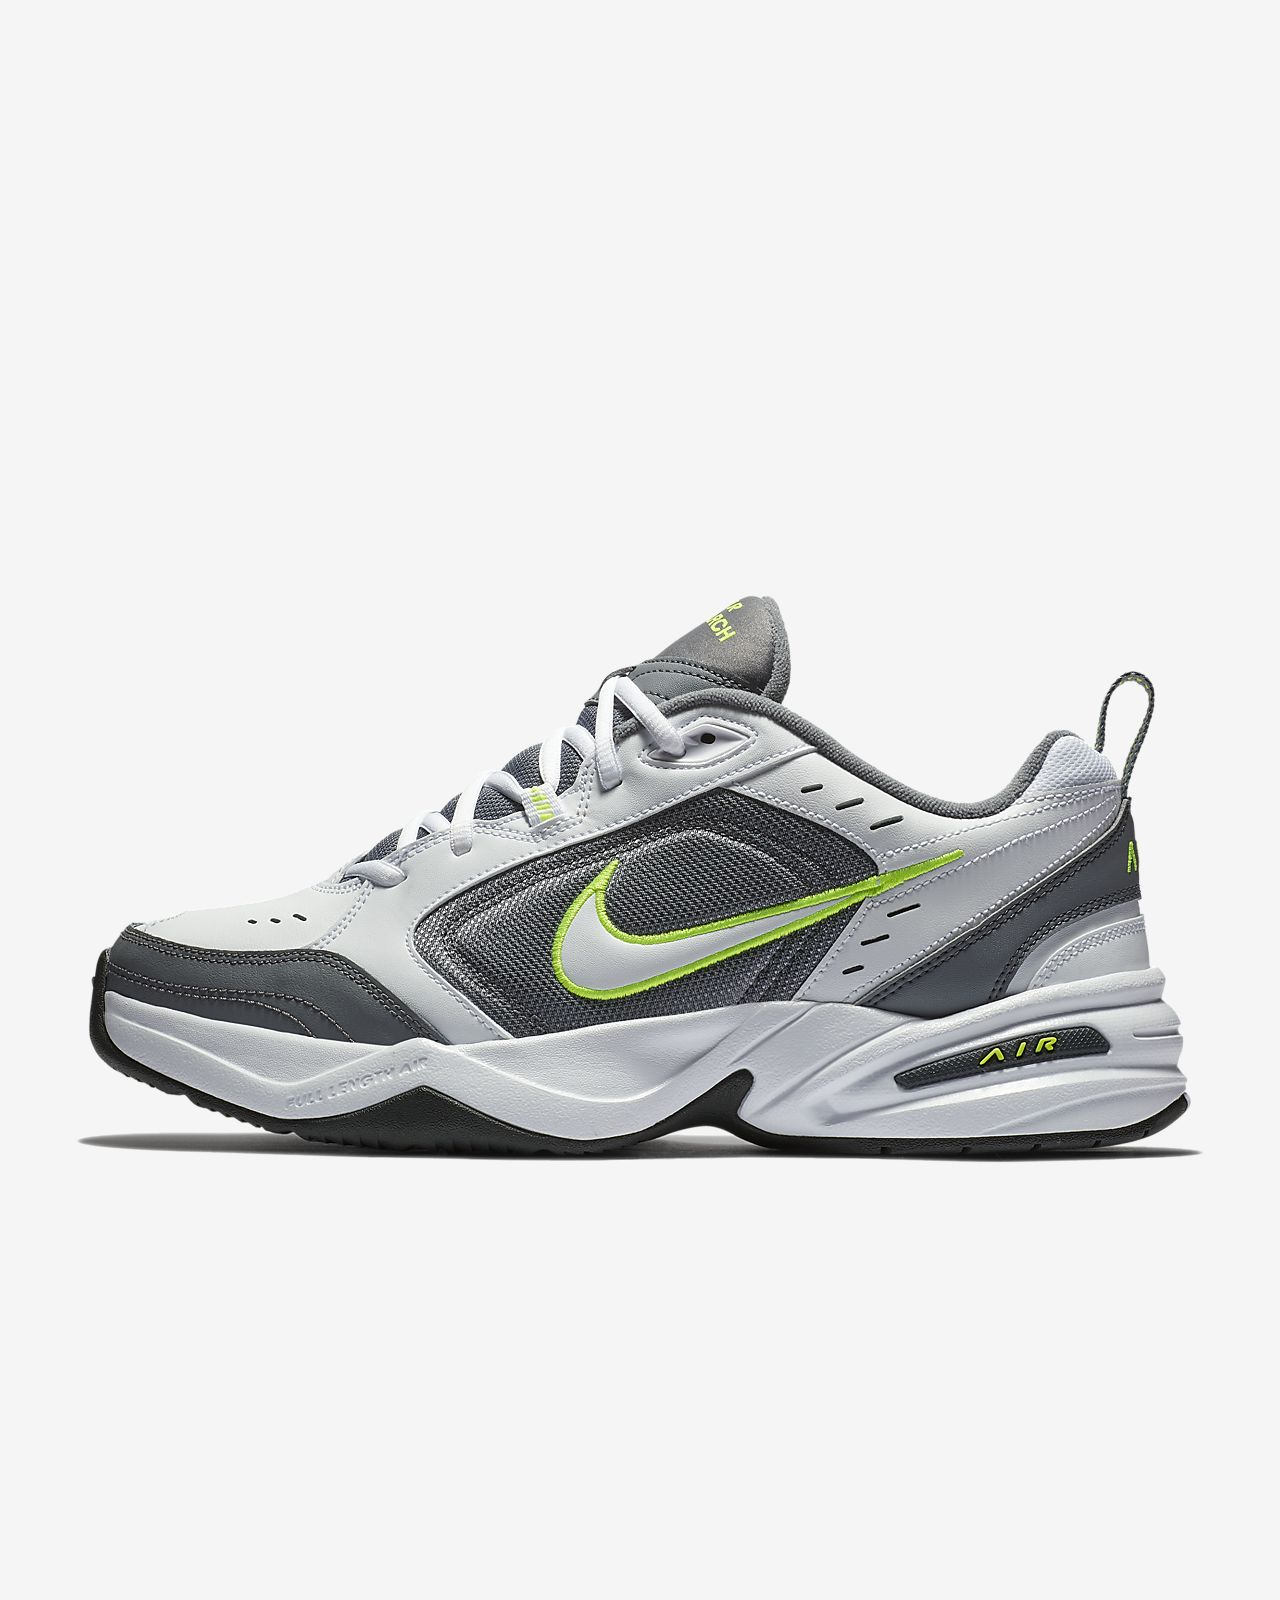 afb3a6ee66f4 Nike Air Monarch IV Lifestyle Gym Shoe. Nike.com